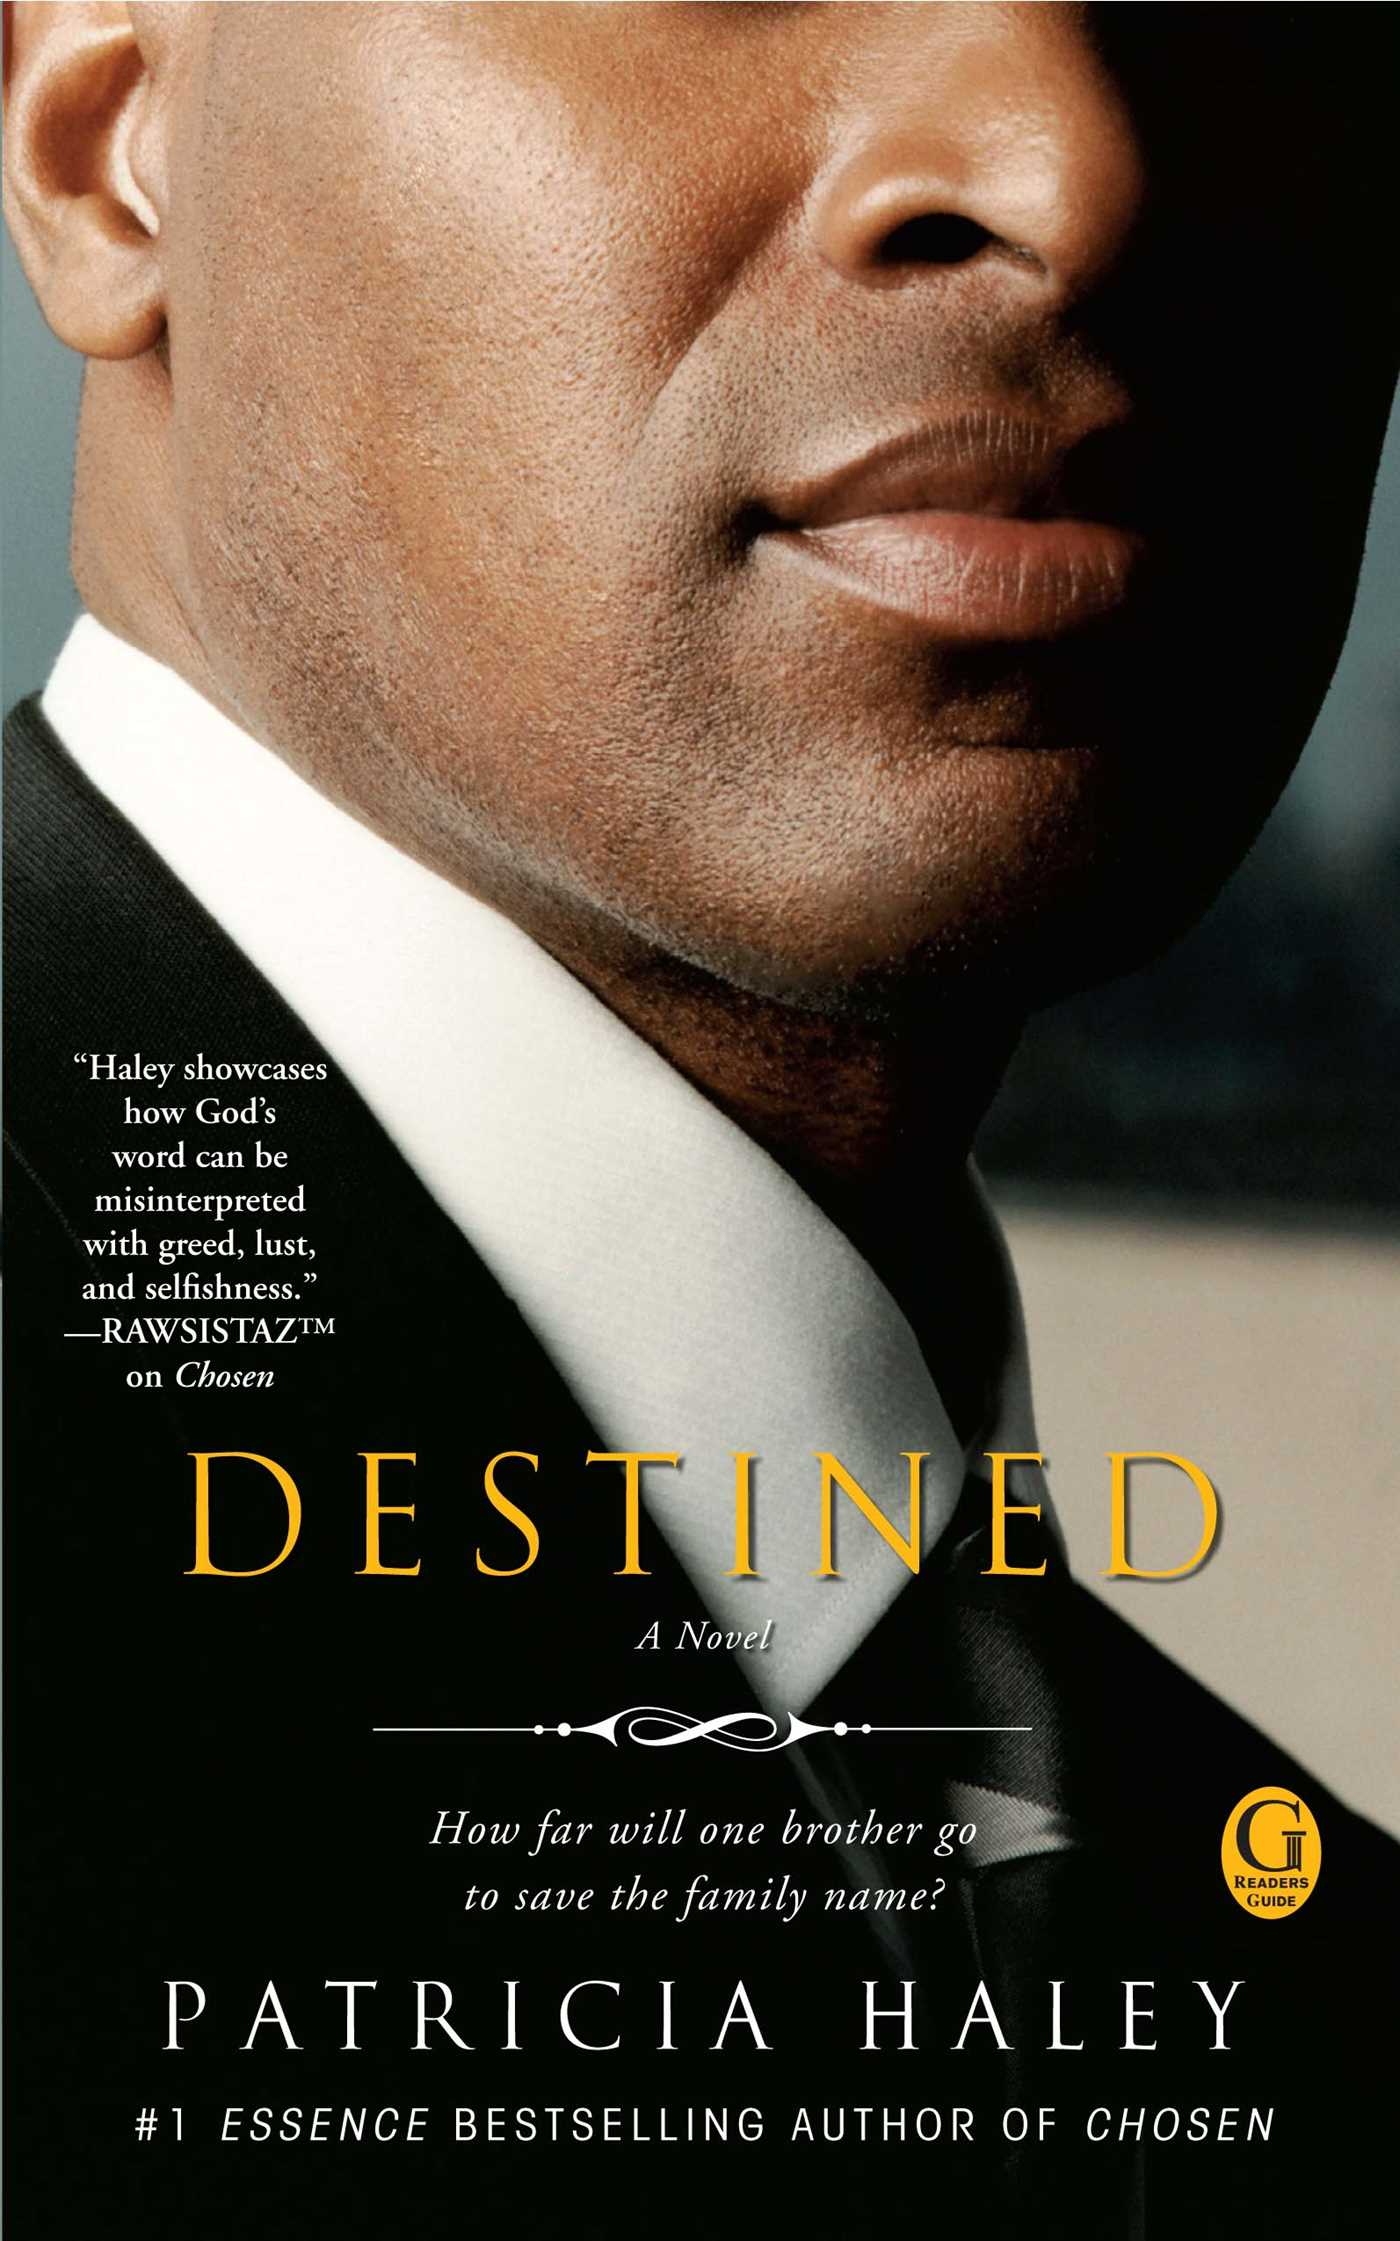 Destined-9781416580638_hr